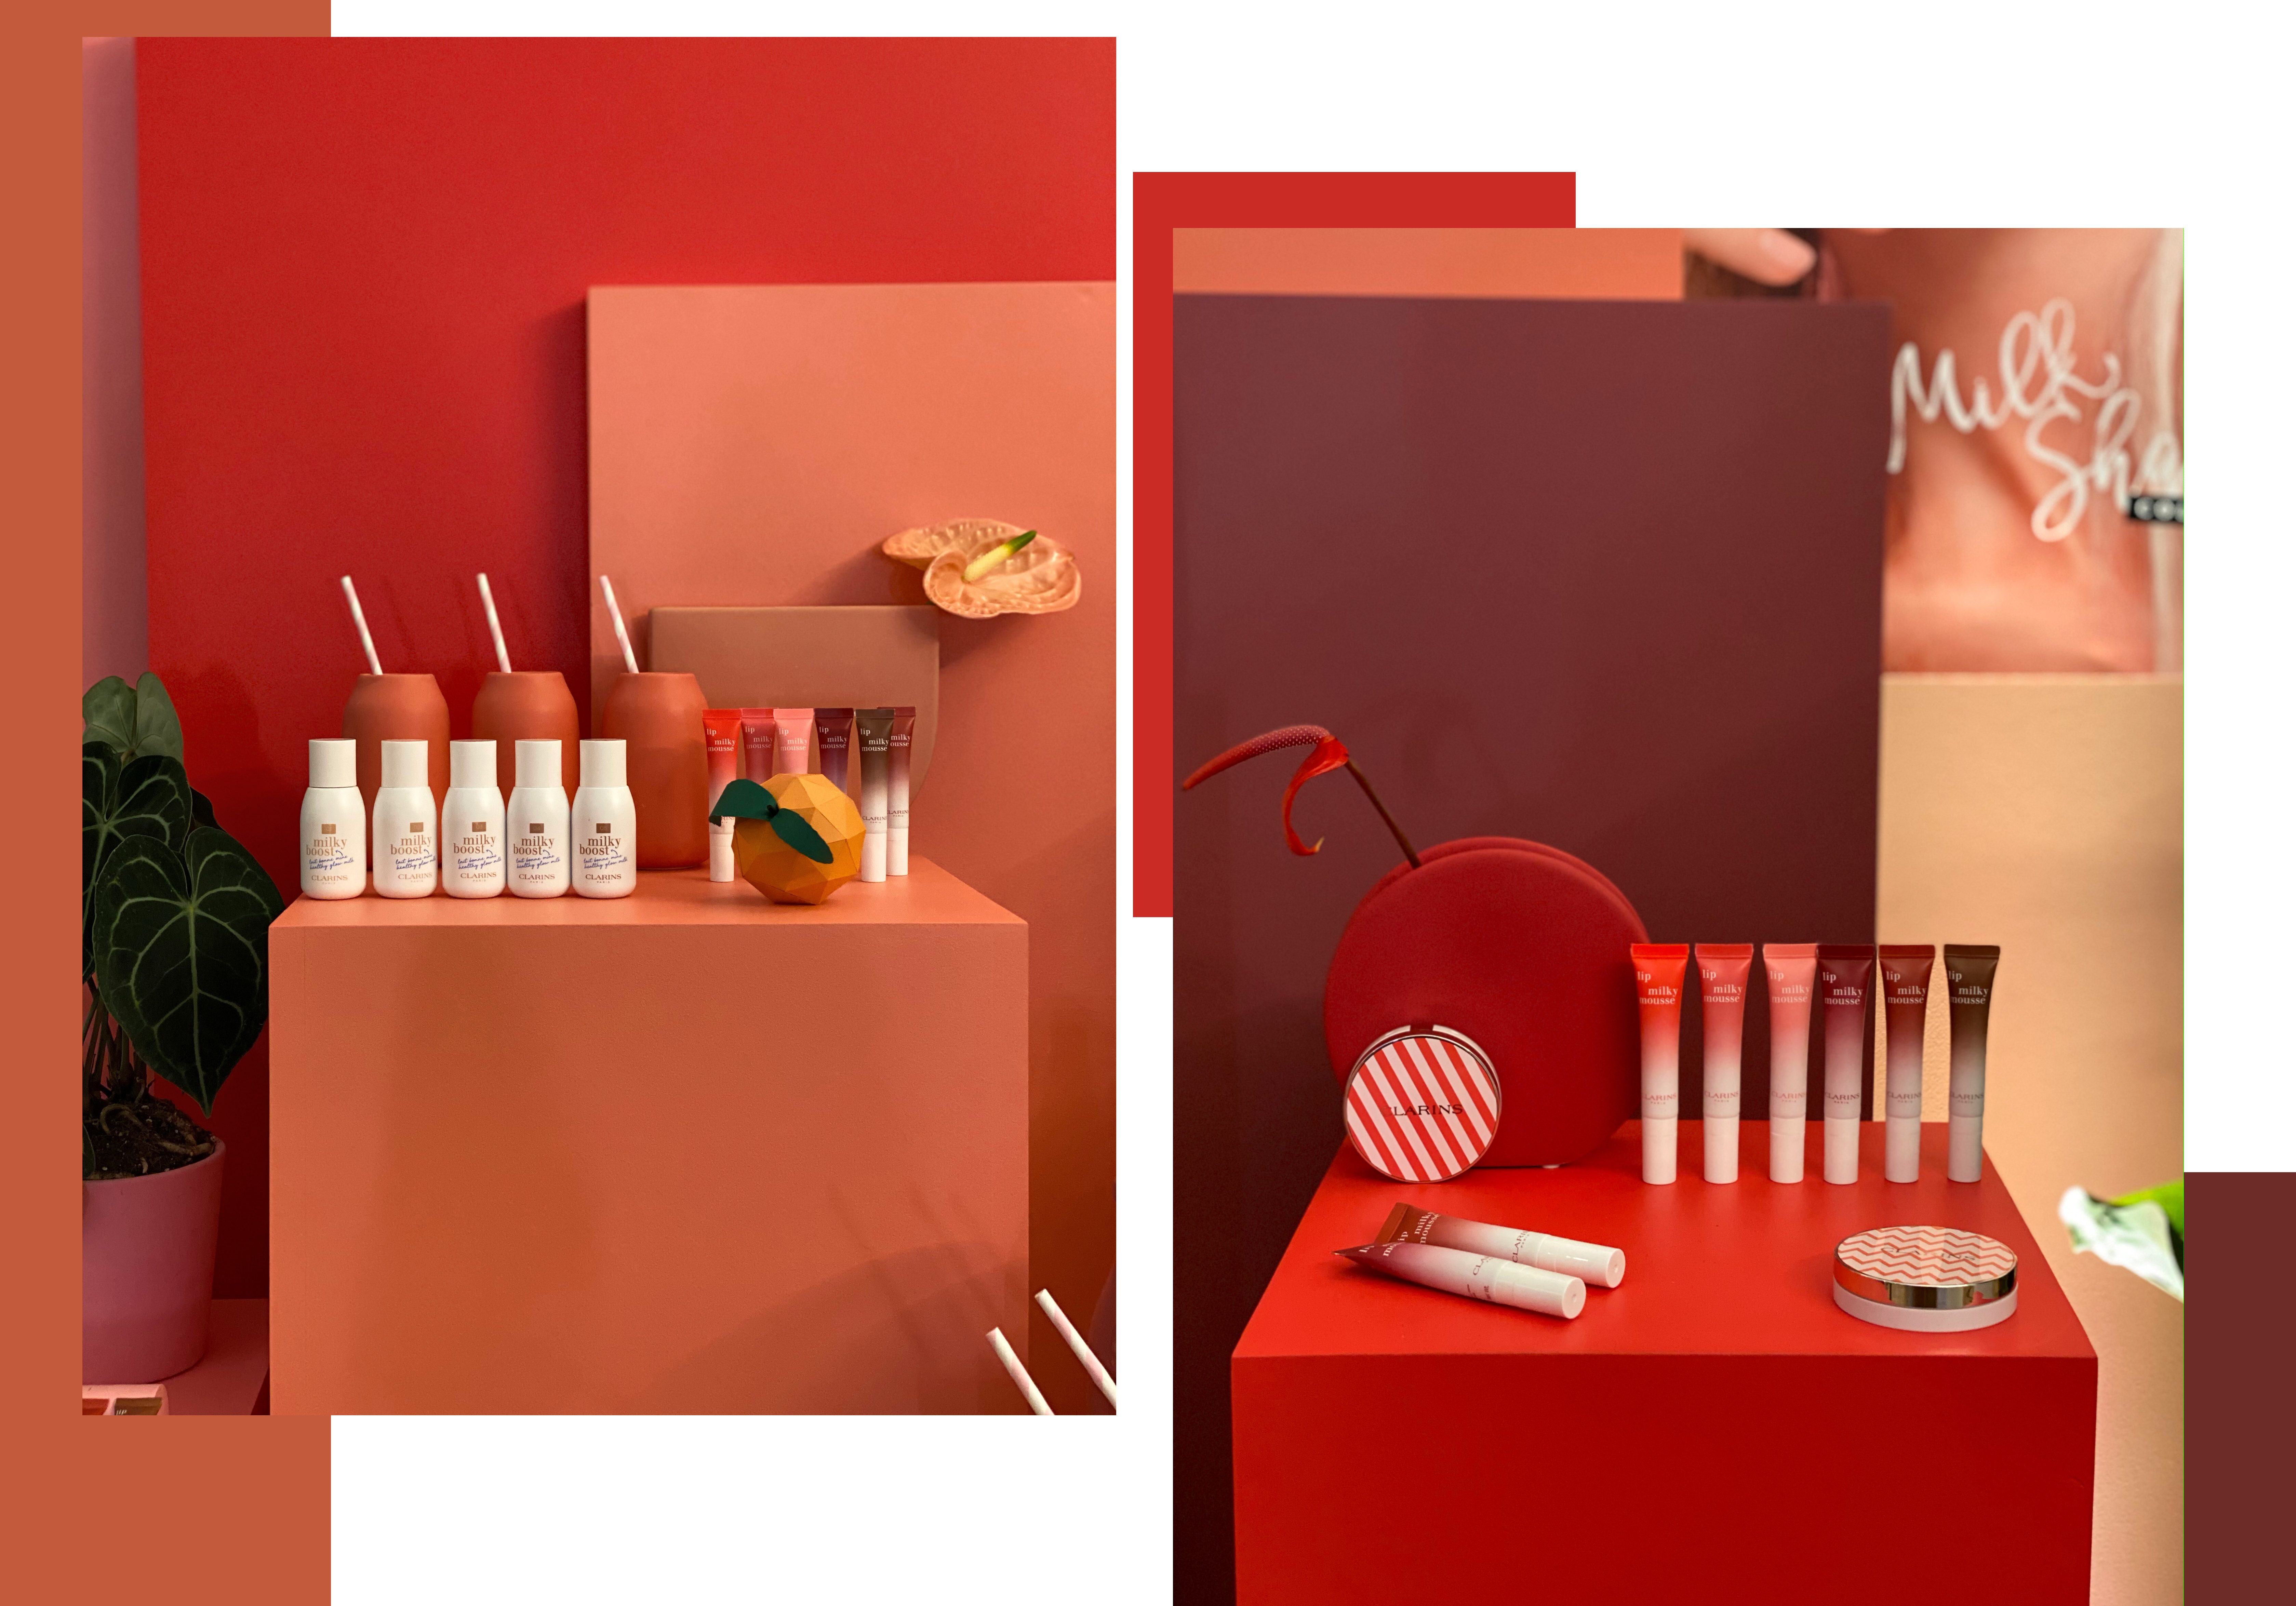 Lip Milky Mousse Clarins Milk Shake Collection